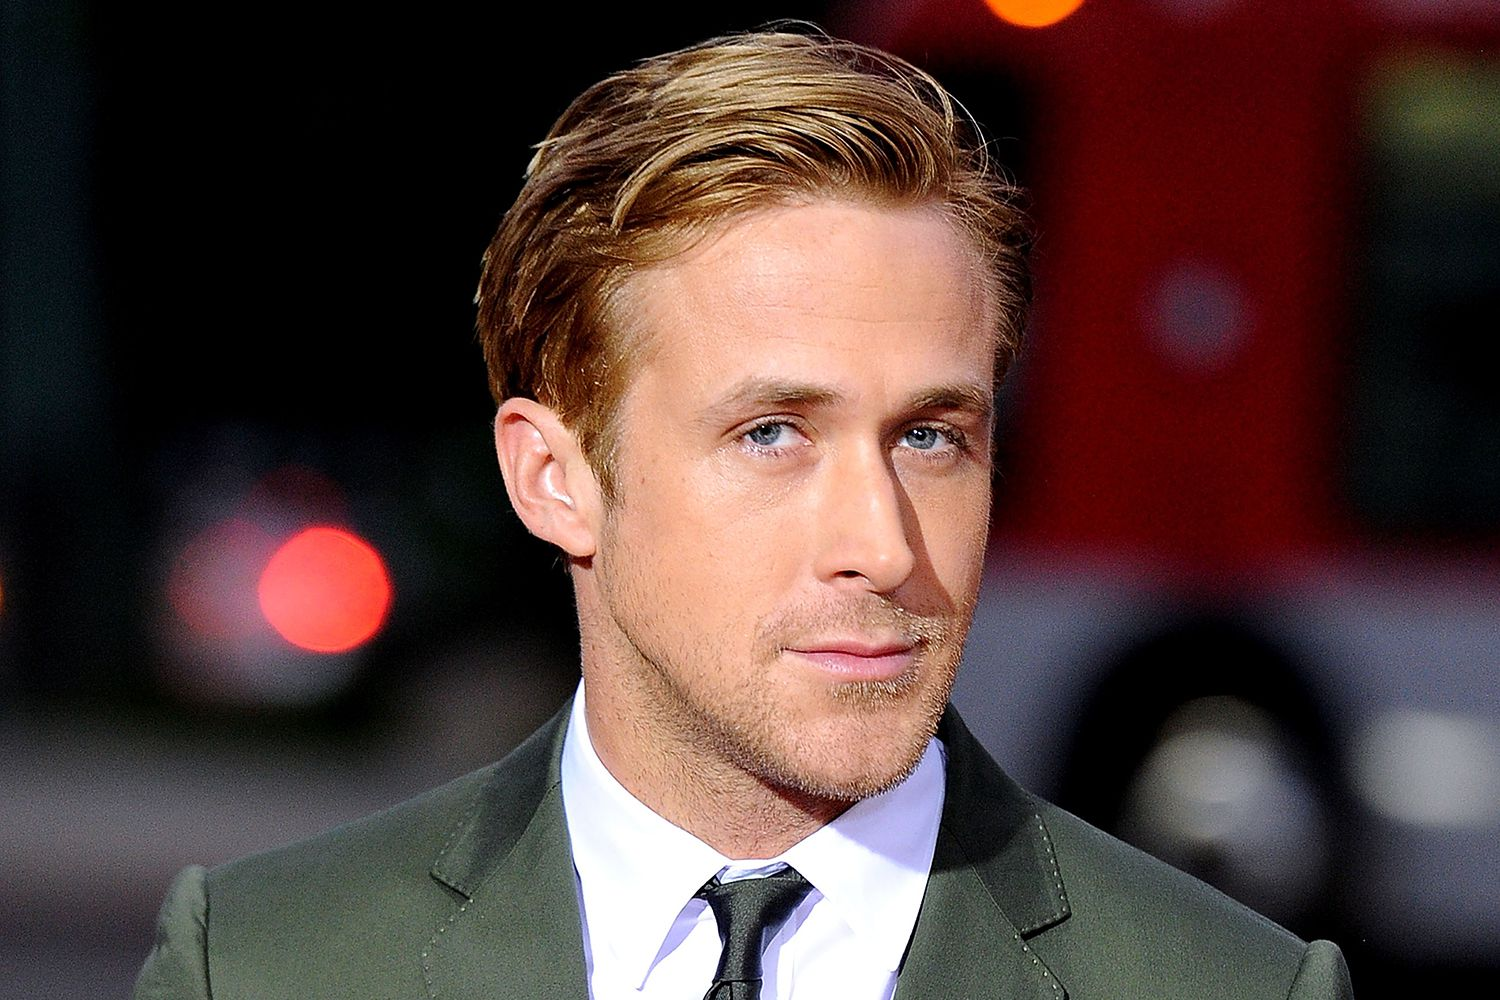 New Hairstyles For Mens 2016: Hairstyles For Men According To Face Shape